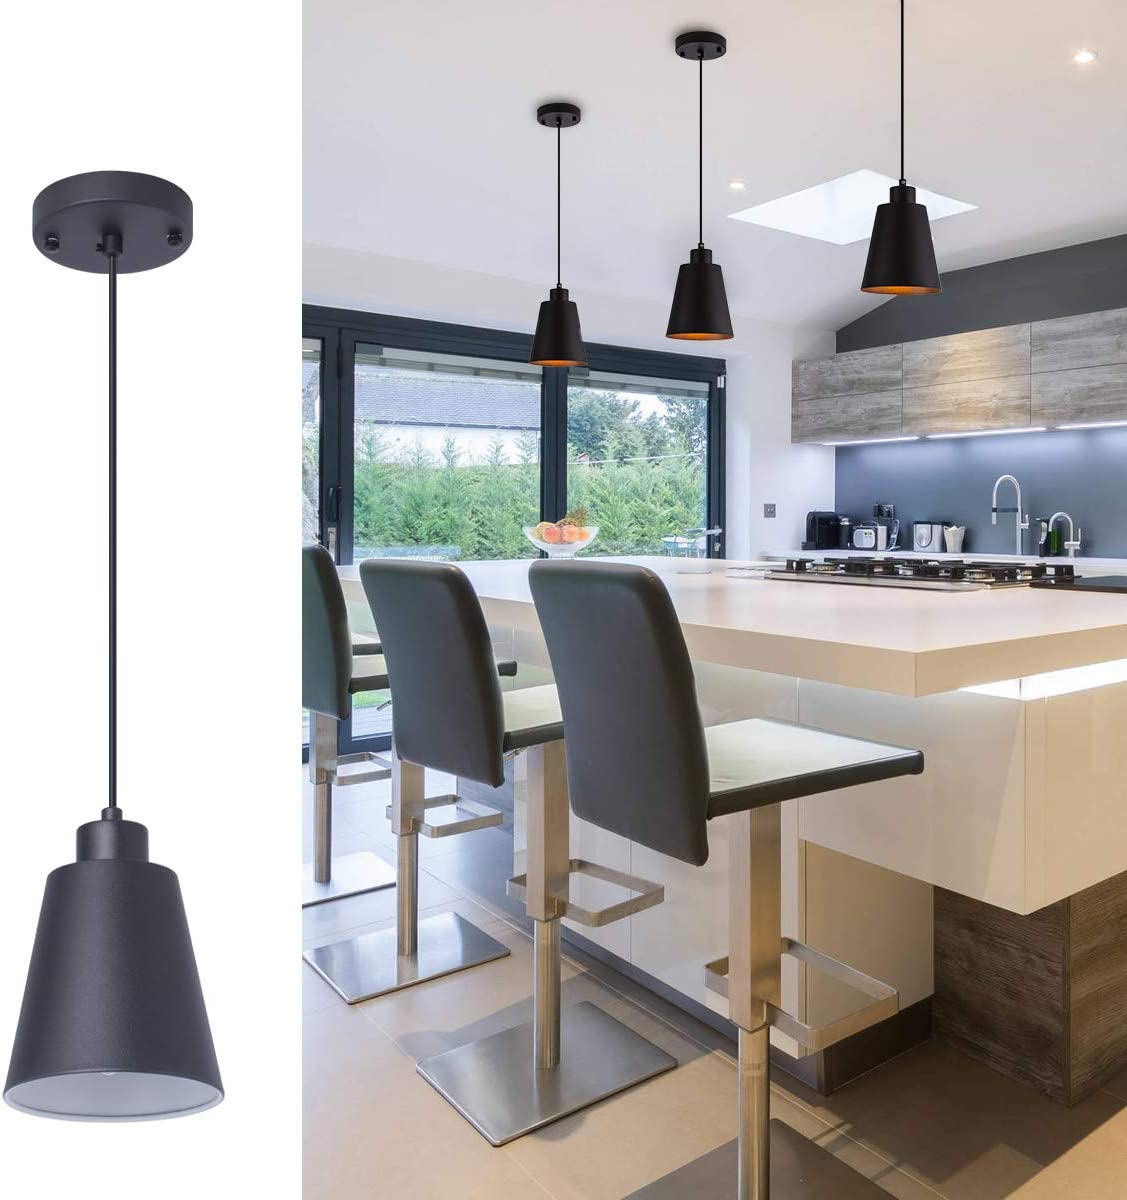 Modern Black Pendant Light Fixture 5 94 Mini 1 Light Pendant Lighting For Kitchen Island Industrial Hanging Pendant Light Cup Shade For Dining Room Foyer Hallway Bar With 78in Flexible Cord Amazon Com